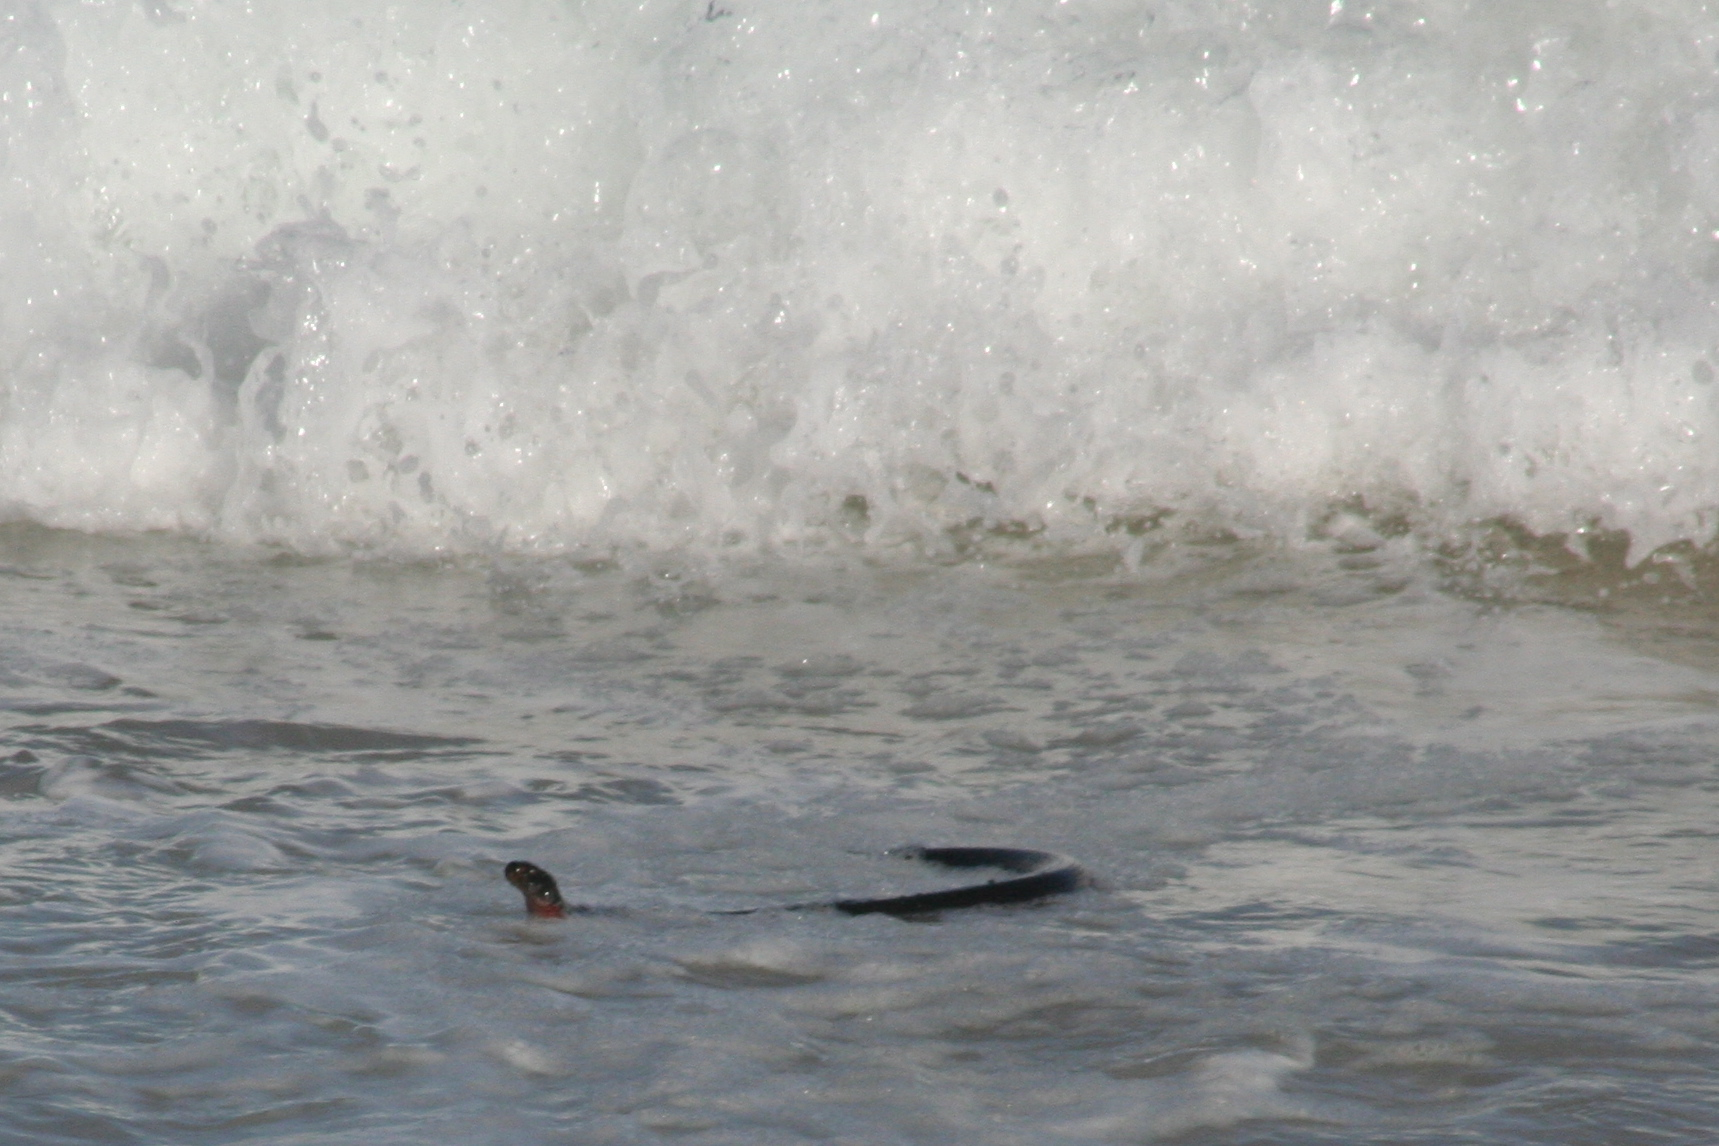 Surfing Red Bellied Black Snake